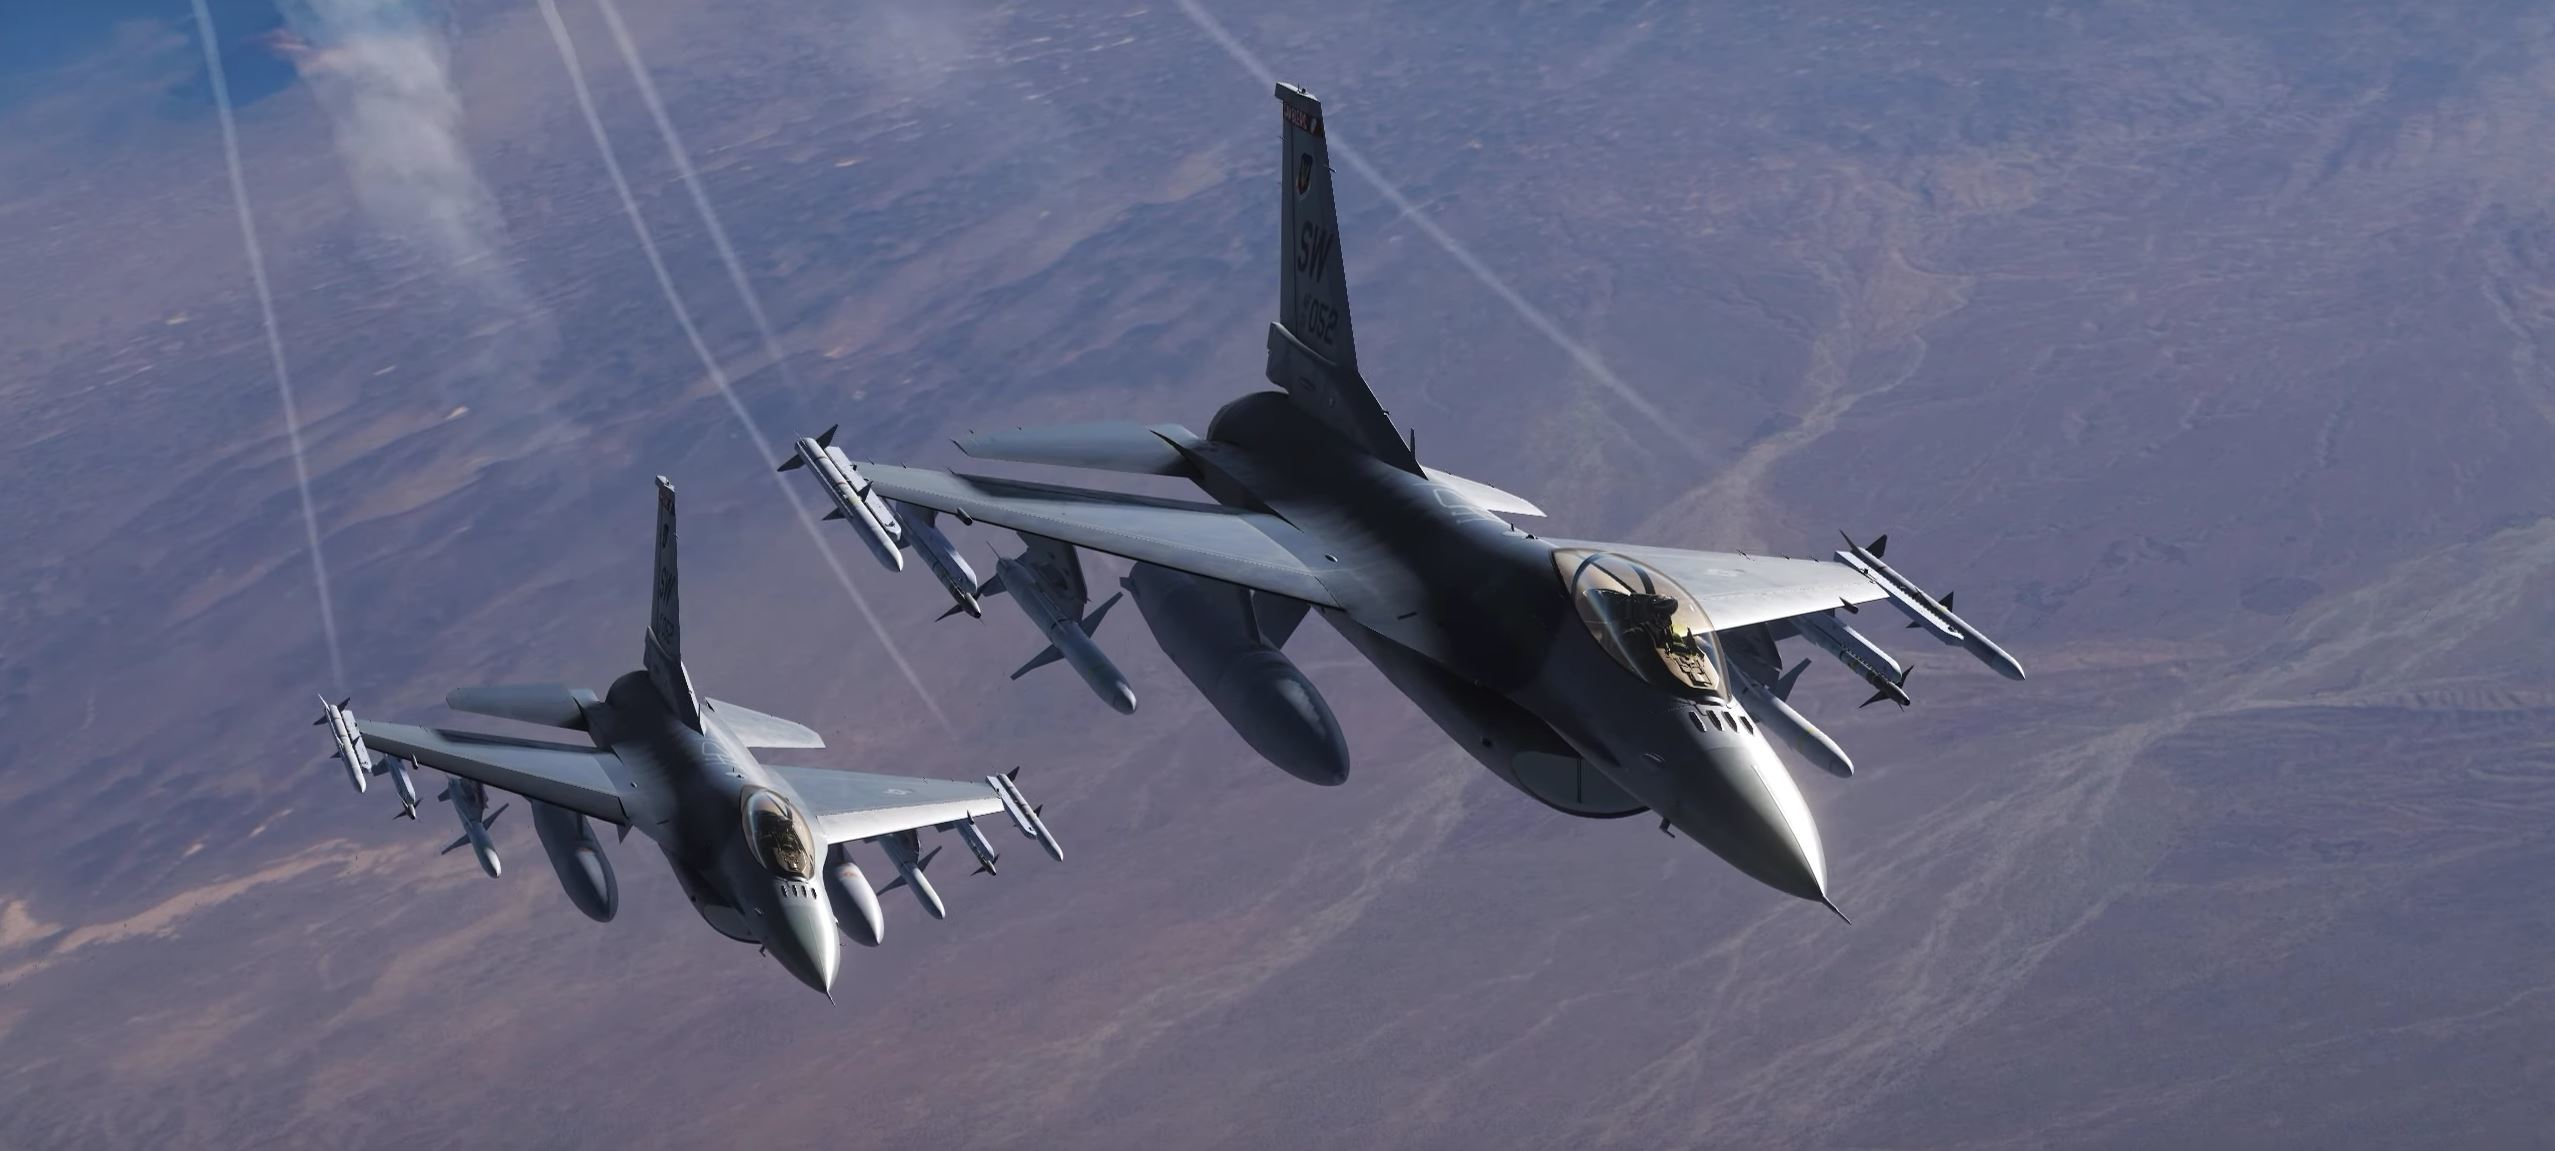 Two F-16C air superiority fighters, with Tactical Air Command tail numbers and chevrons, fly in formation in DCS World.